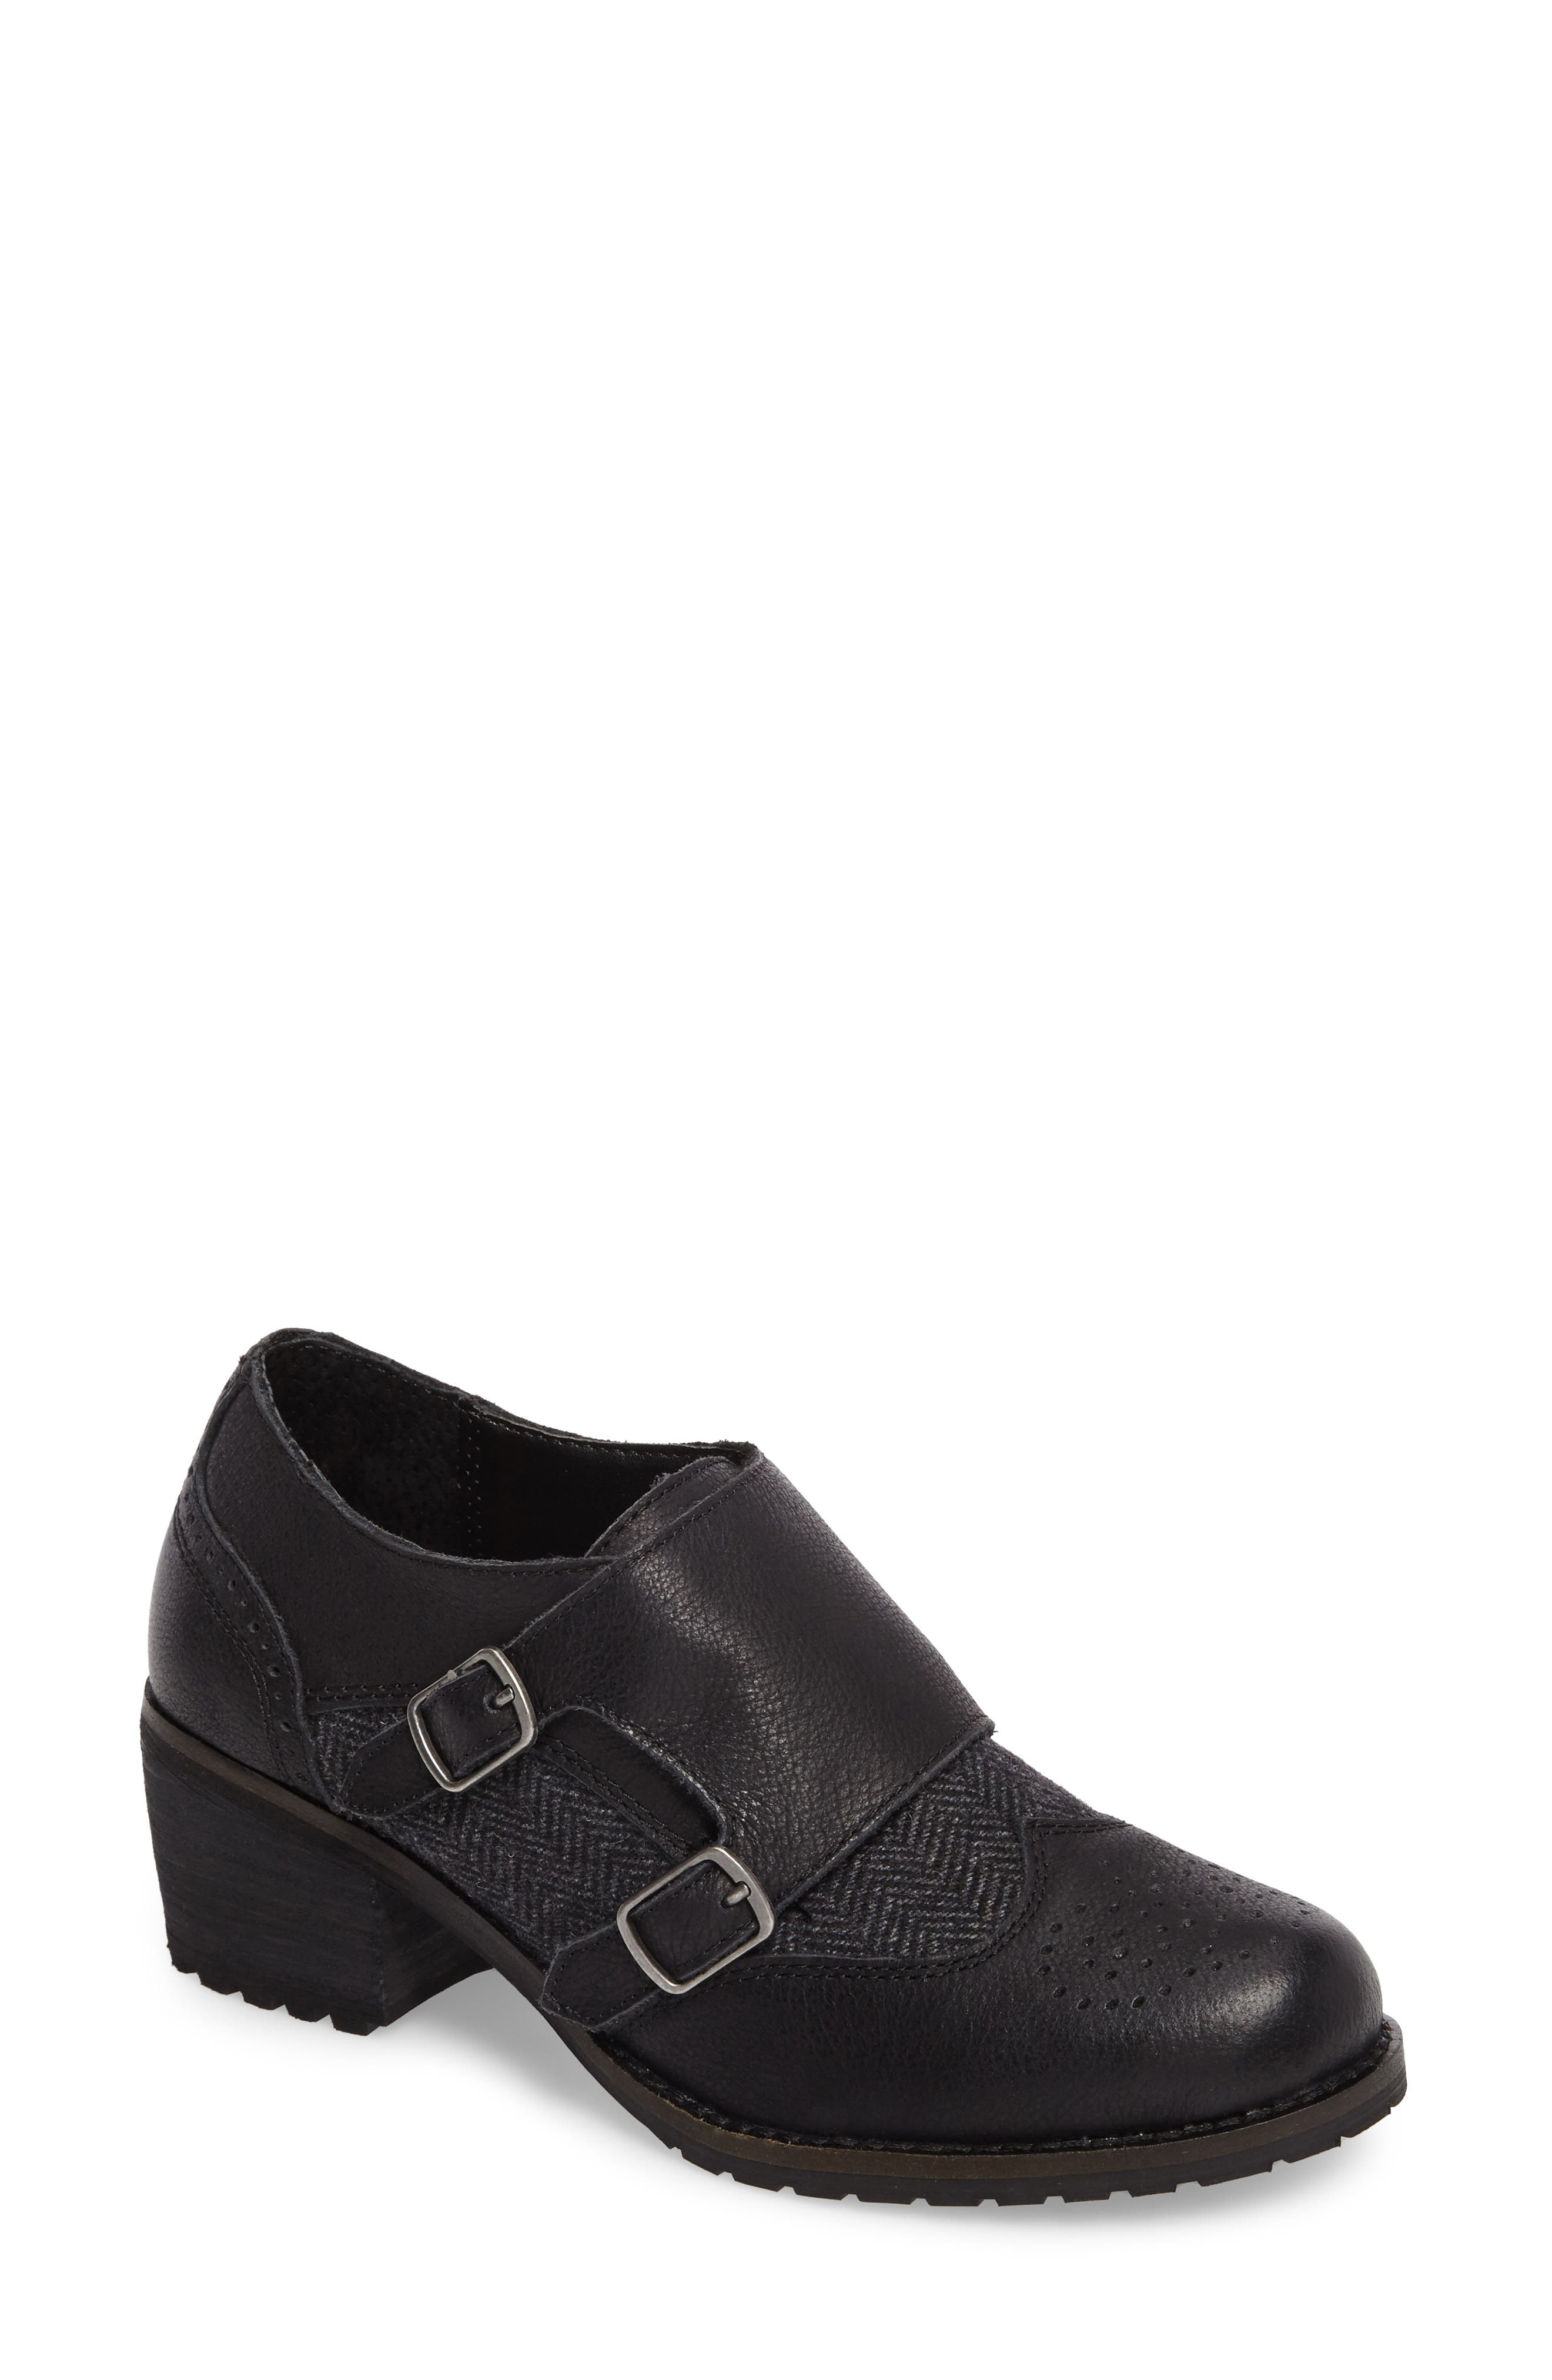 Dina Double Monk Strap Ankle Boot,                         Main,                         color, BLACK LEATHER